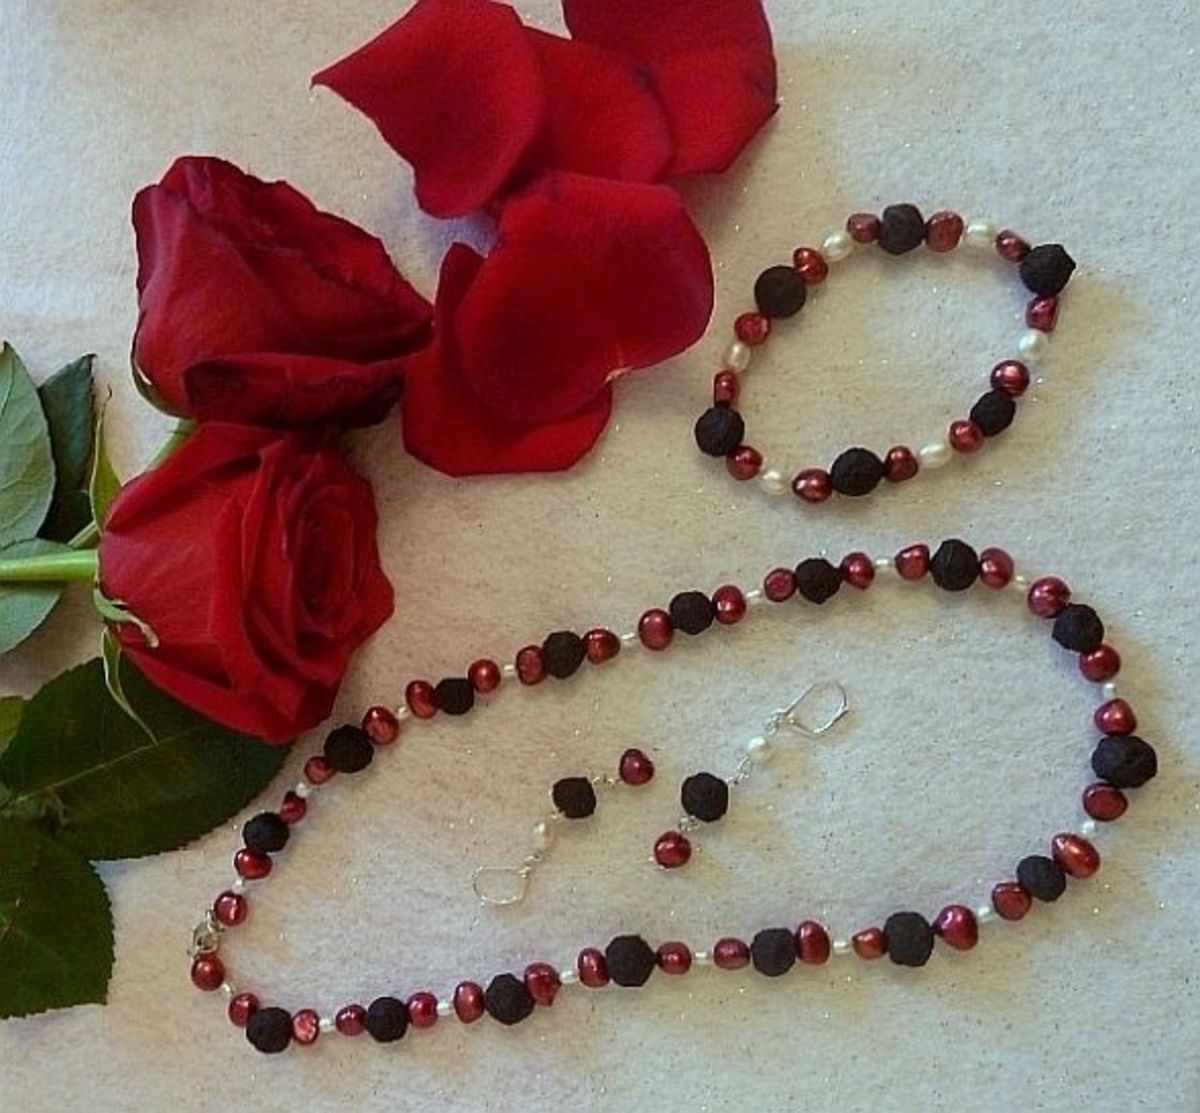 Jewelry set made from red roses.